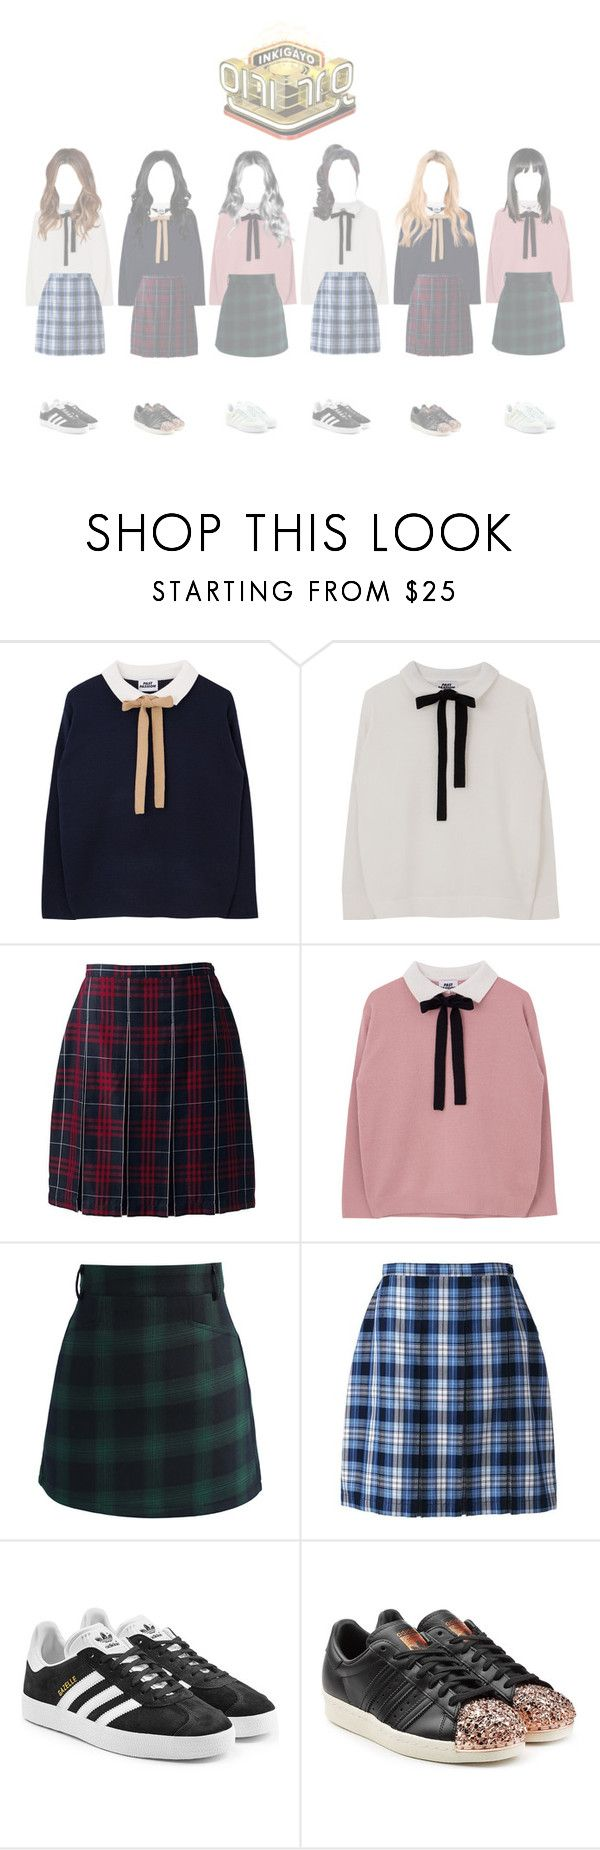 """""""[LATE] ┇ APRIL FOOLS ┇ INKIGAYO - COME OUT"""" by dreamcatcher-official ❤ liked on Polyvore featuring Lands' End, Chicwish, adidas Originals and adidas"""